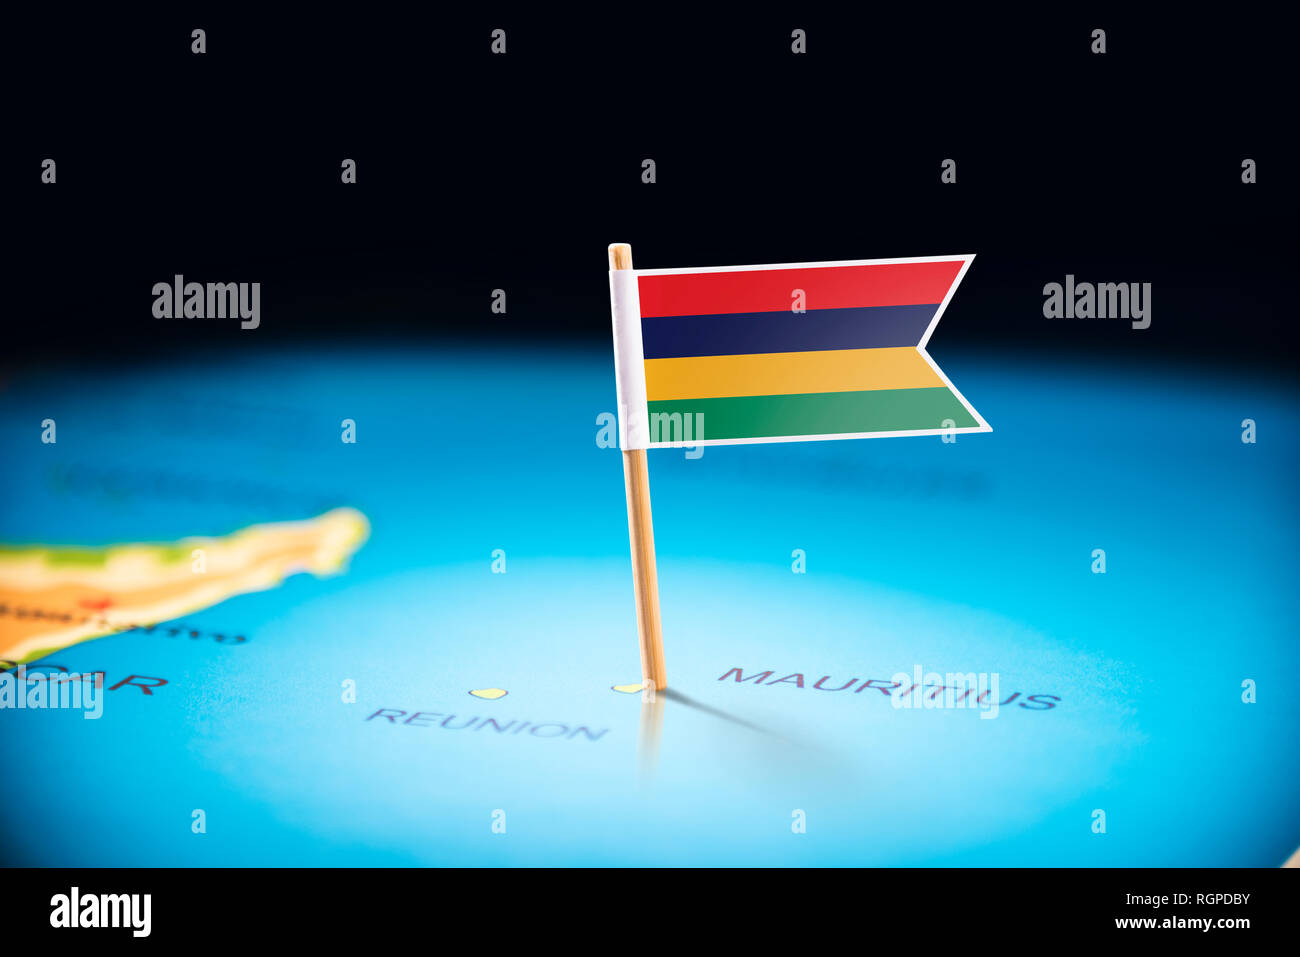 Mauritius marked with a flag on the map Stock Photo